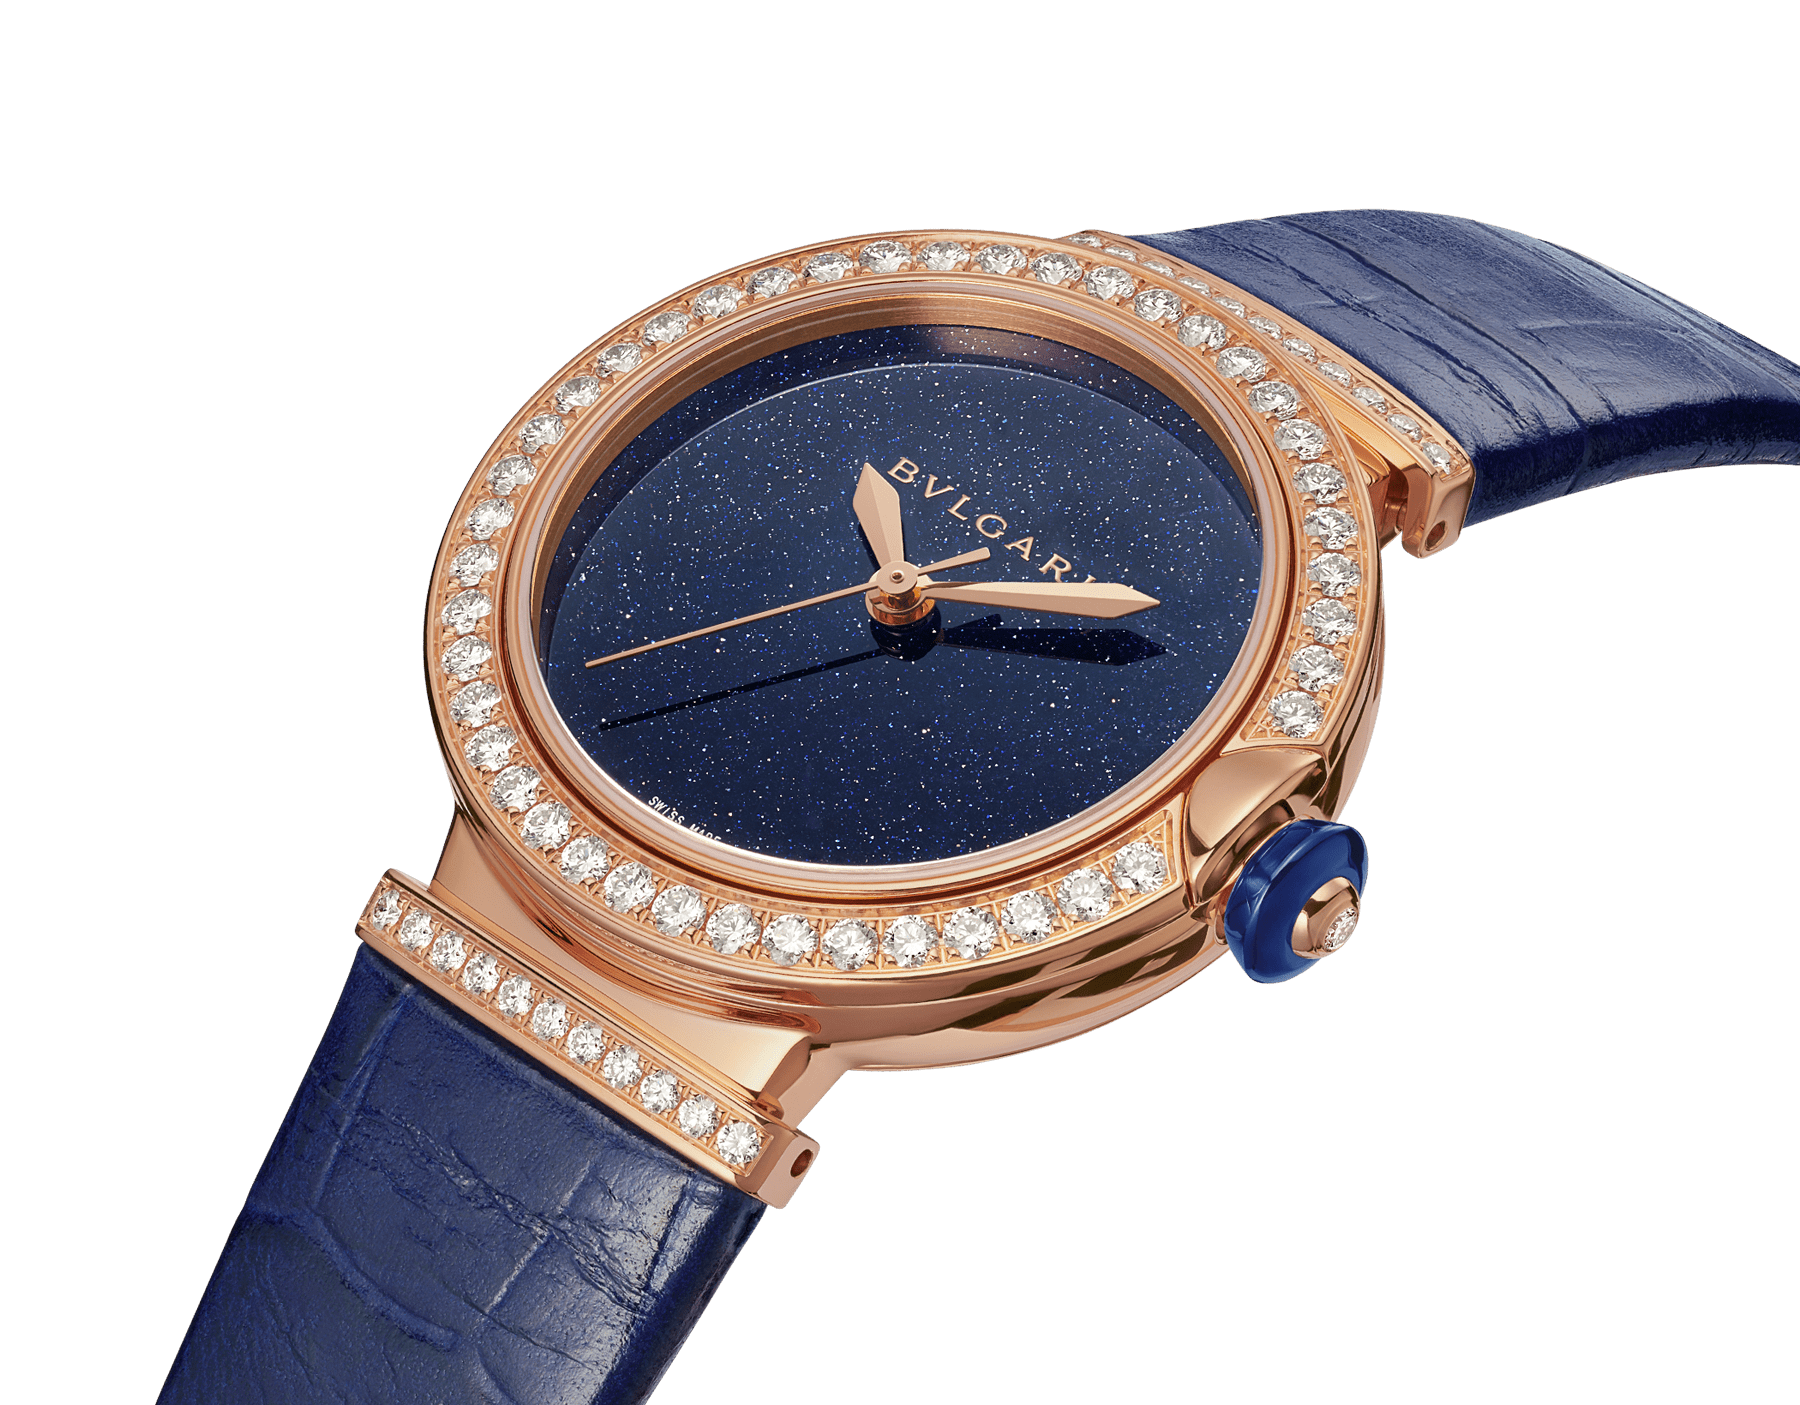 LVCEA watch with mechanical movement and automatic winding, polished 18 kt rose gold case and links both set with round brilliant-cut diamonds, blue aventurine dial and blue alligator bracelet. Water-resistant up to 30 metres. 103341 image 2